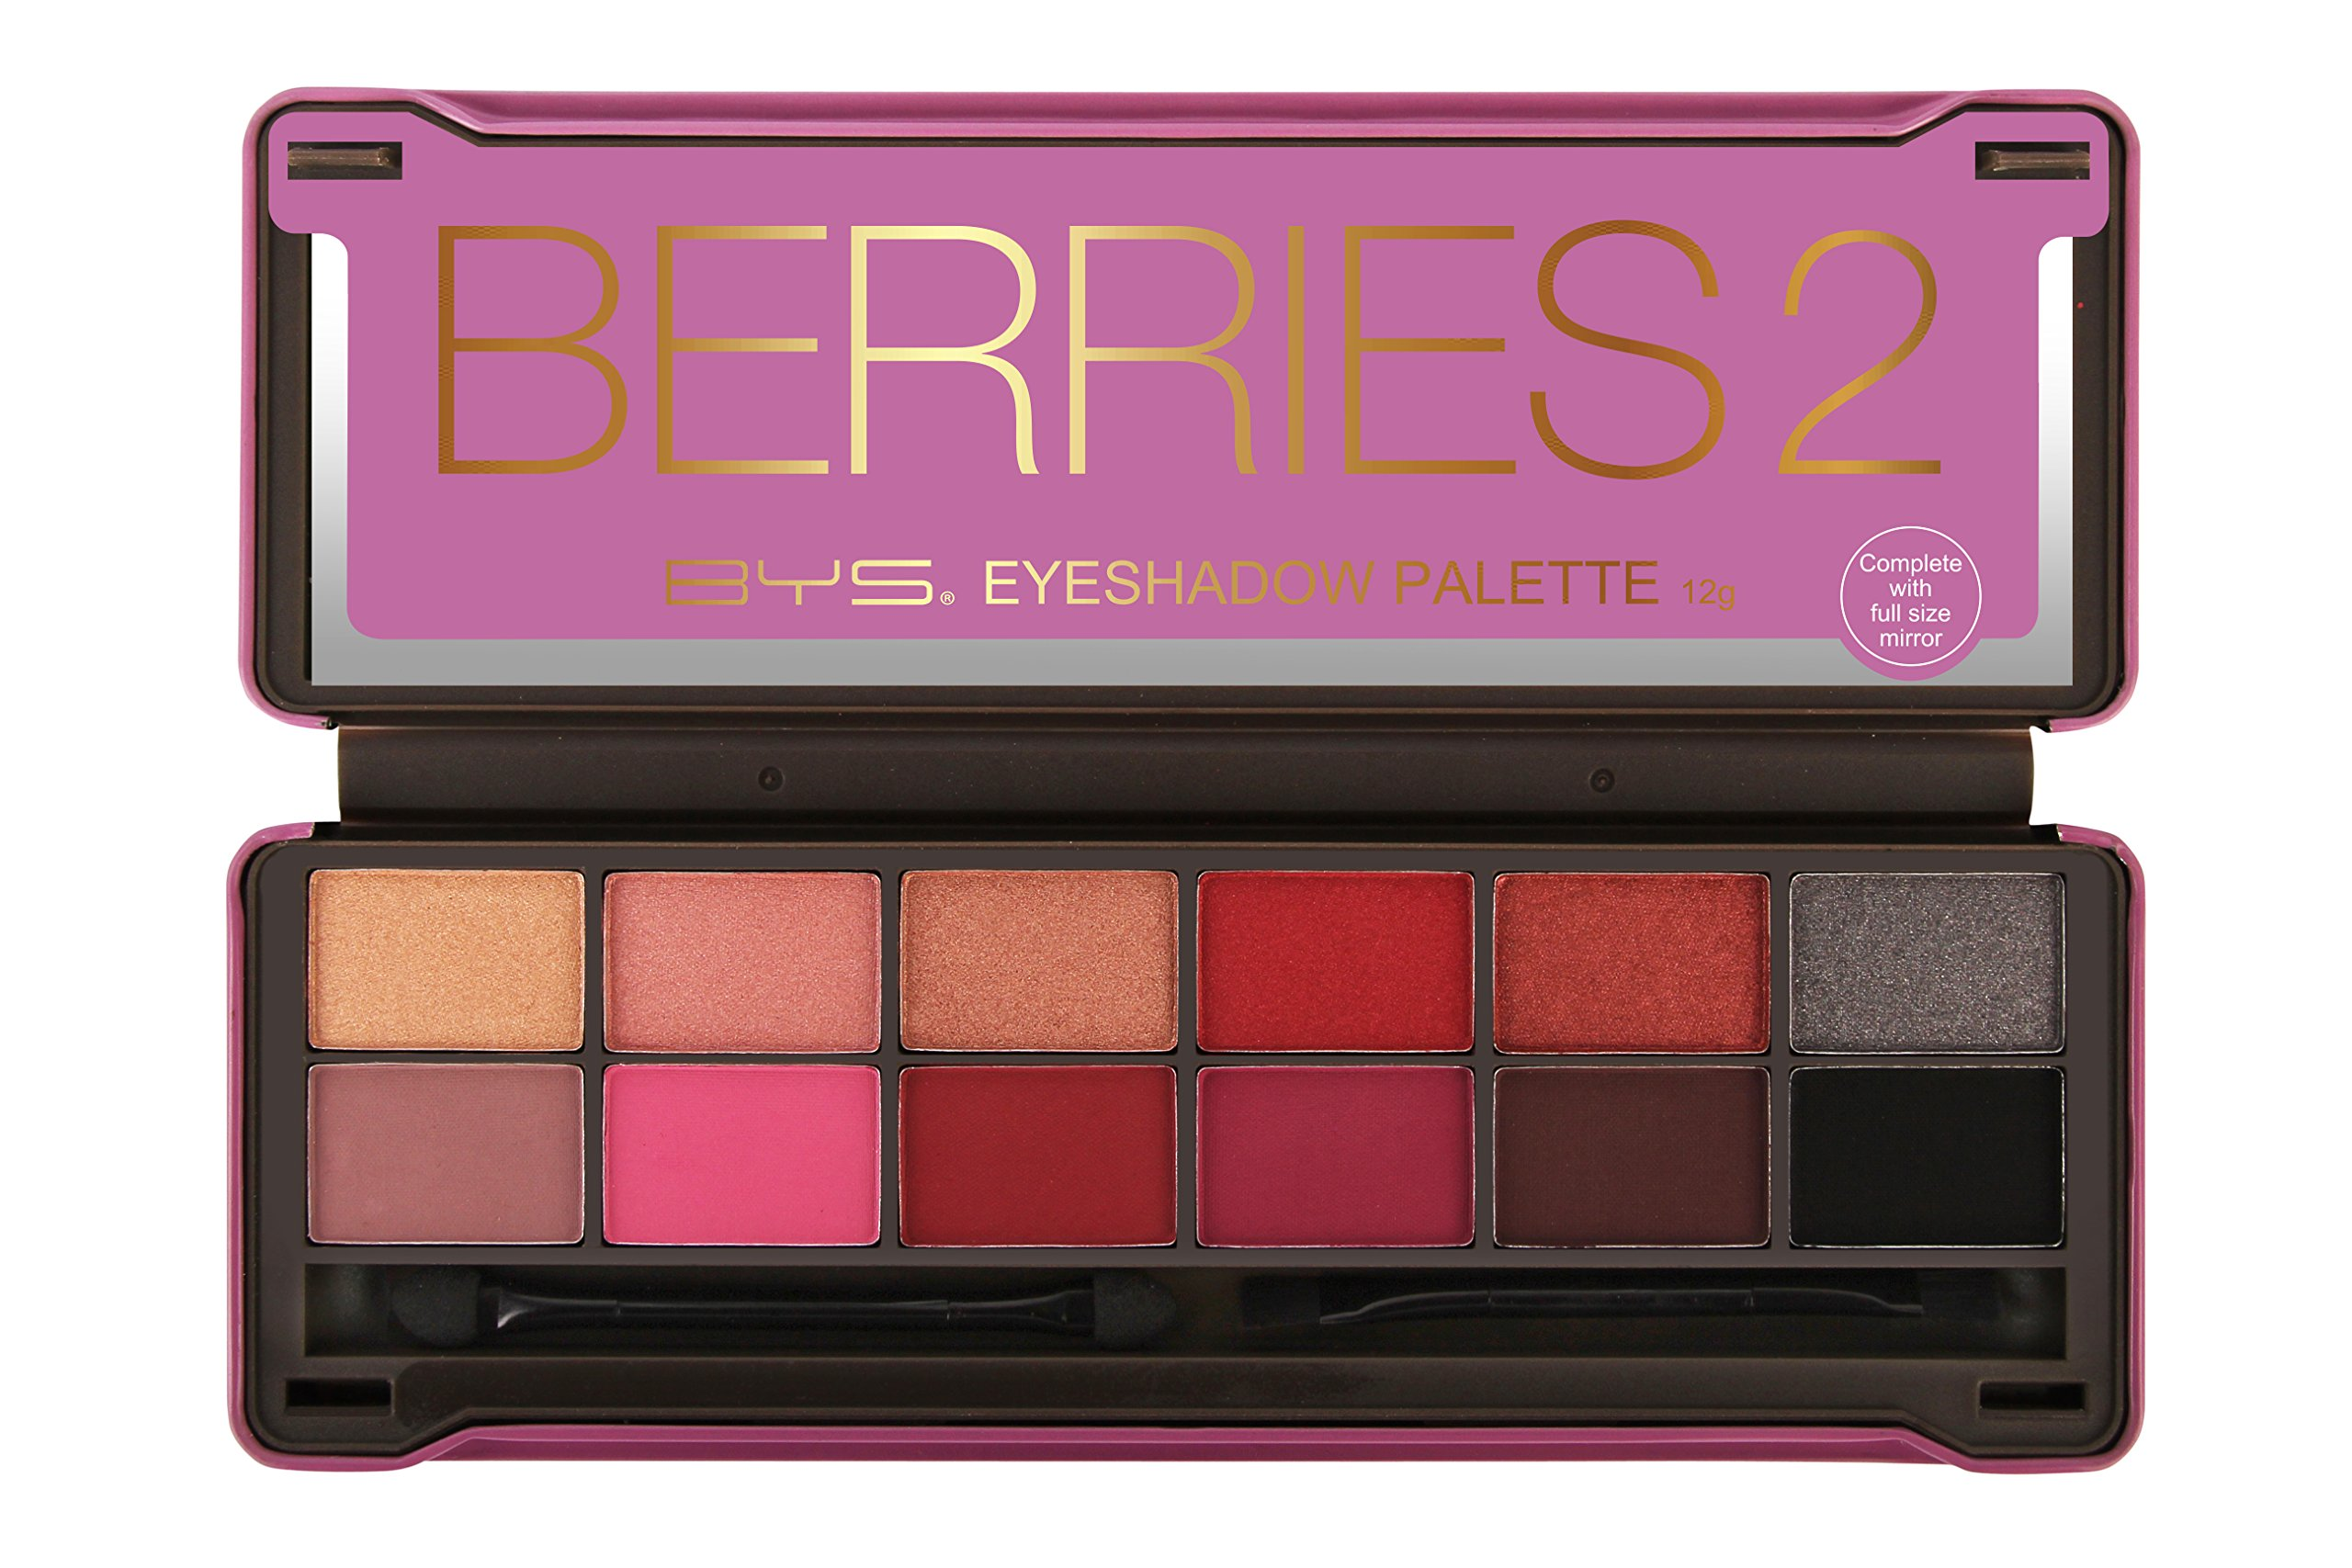 BYS Berries 2 Eyeshadow Palette, 12 Color Collection in Tin Kit with Mirror - Highly Pigmented Matte & Metallic Shades